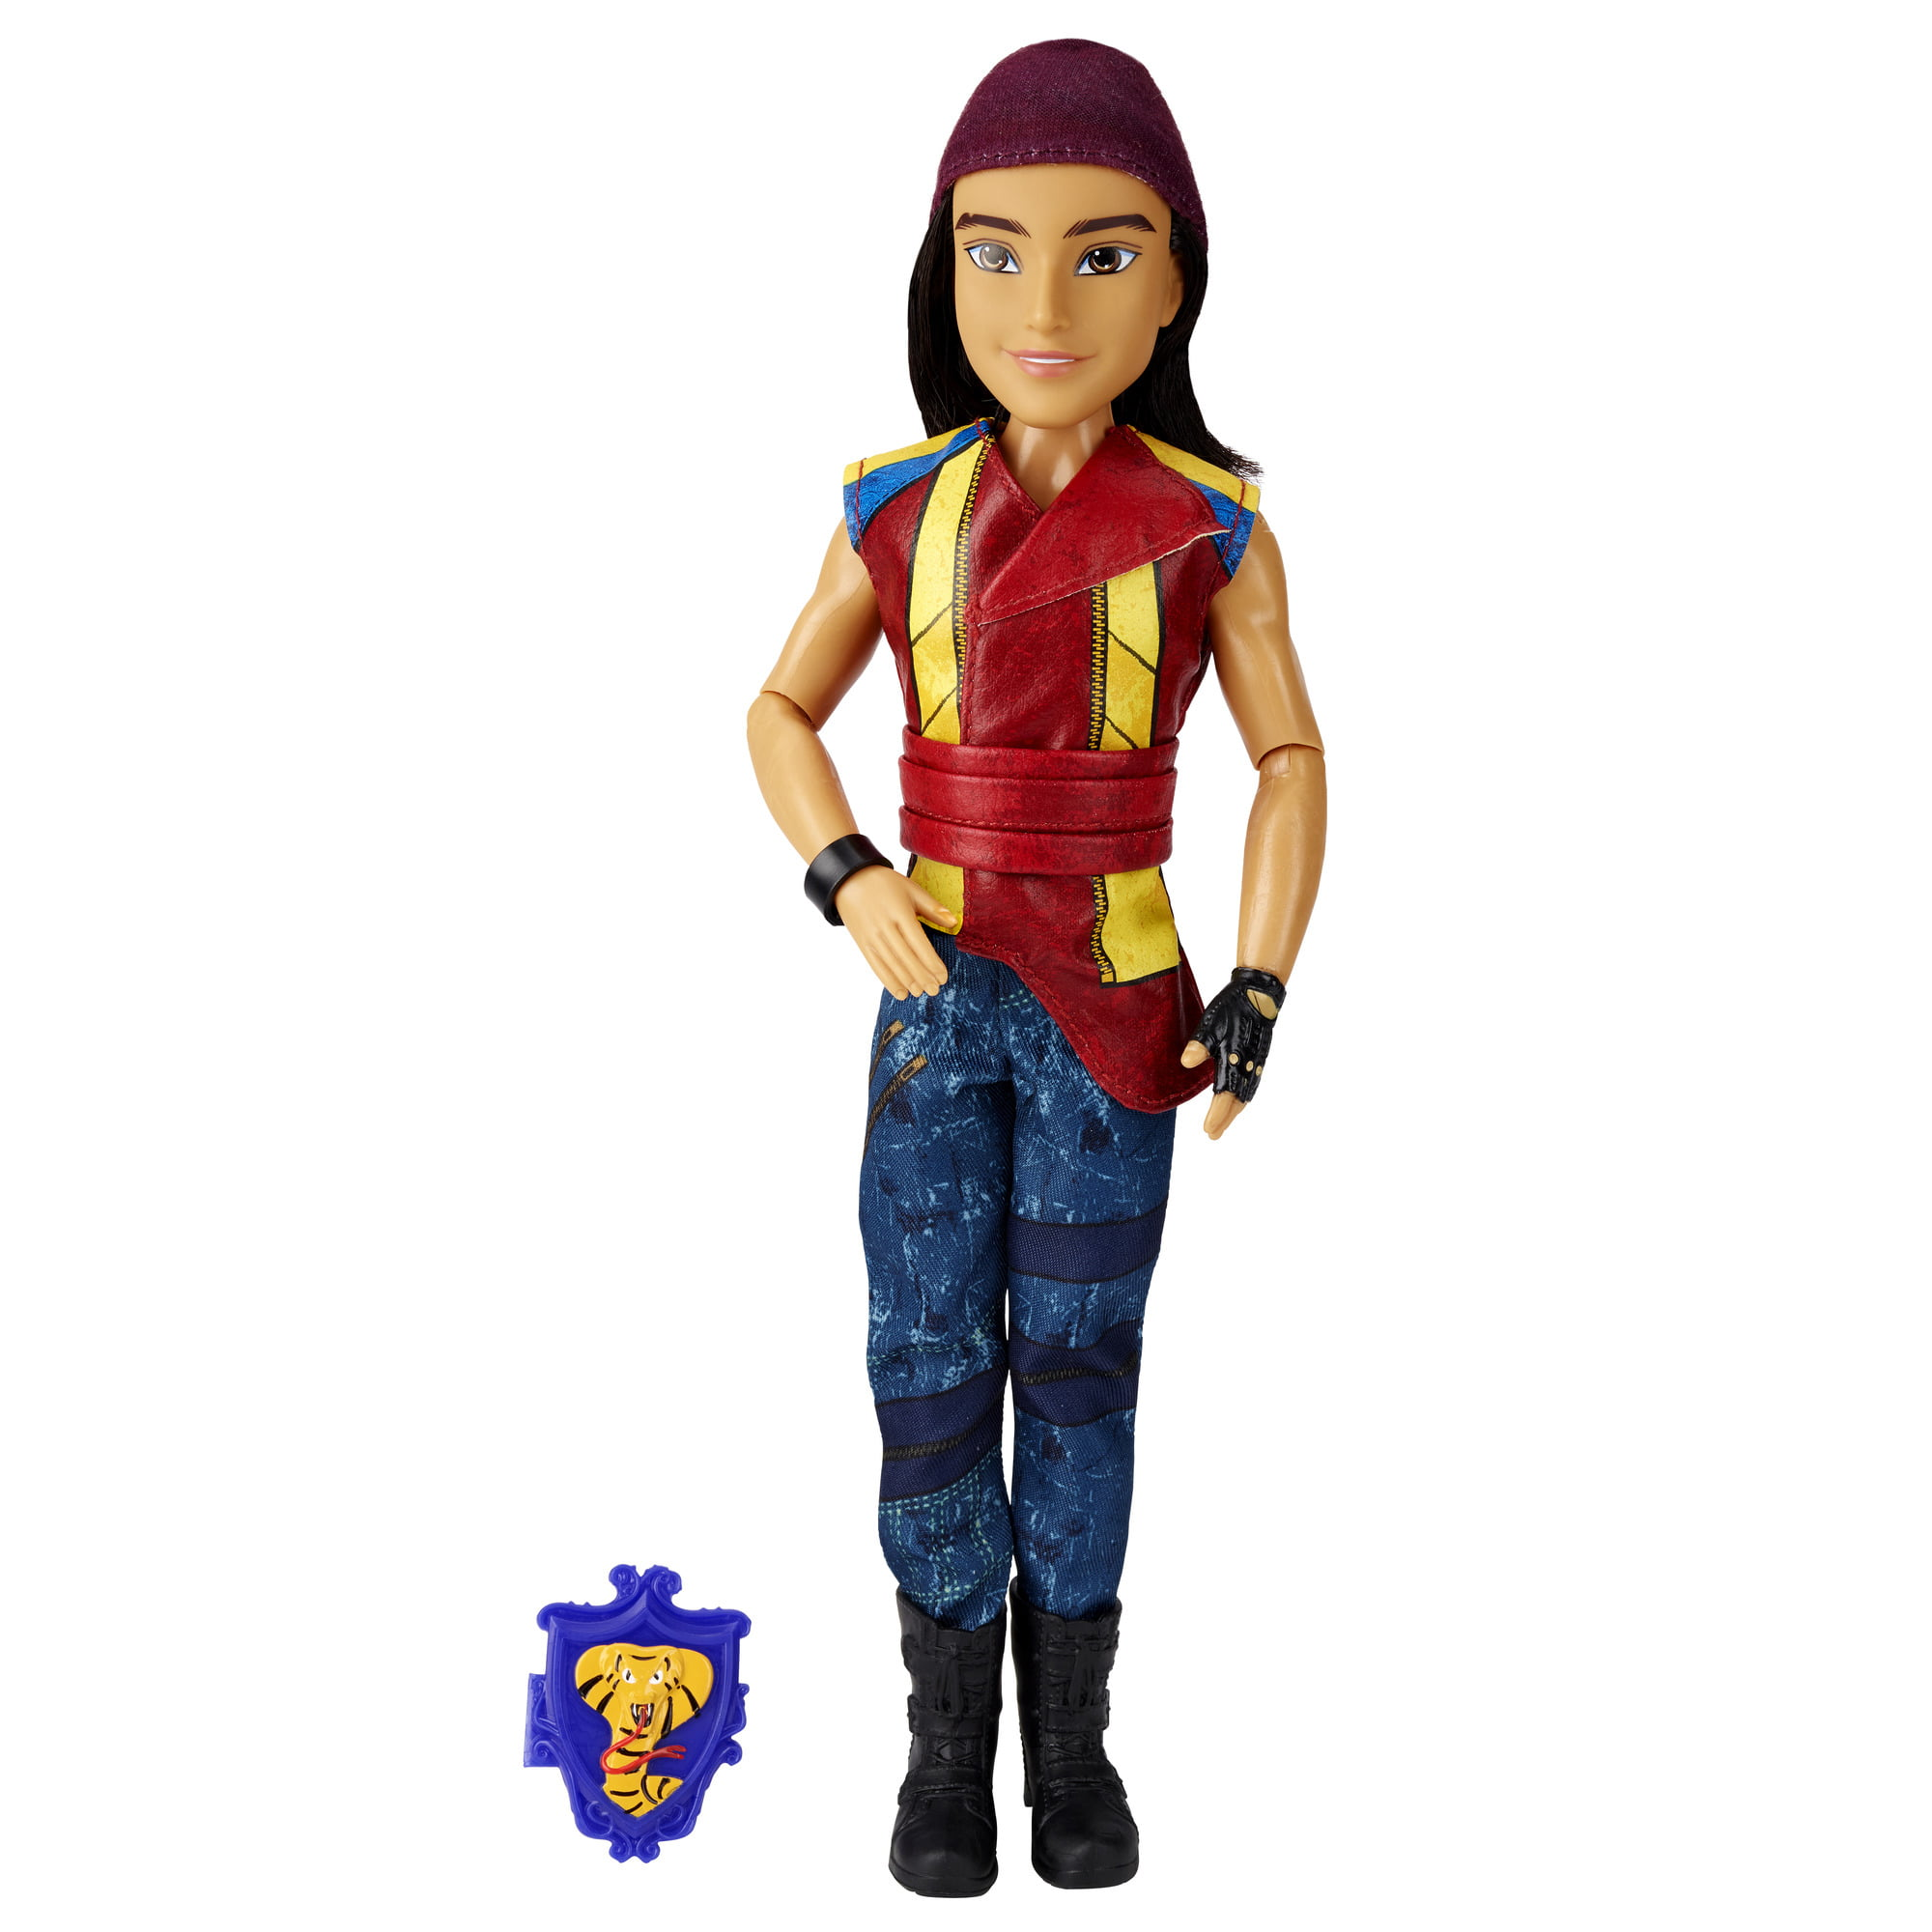 Disney Descendants Signature Jay Isle of the Lost Doll by Generic